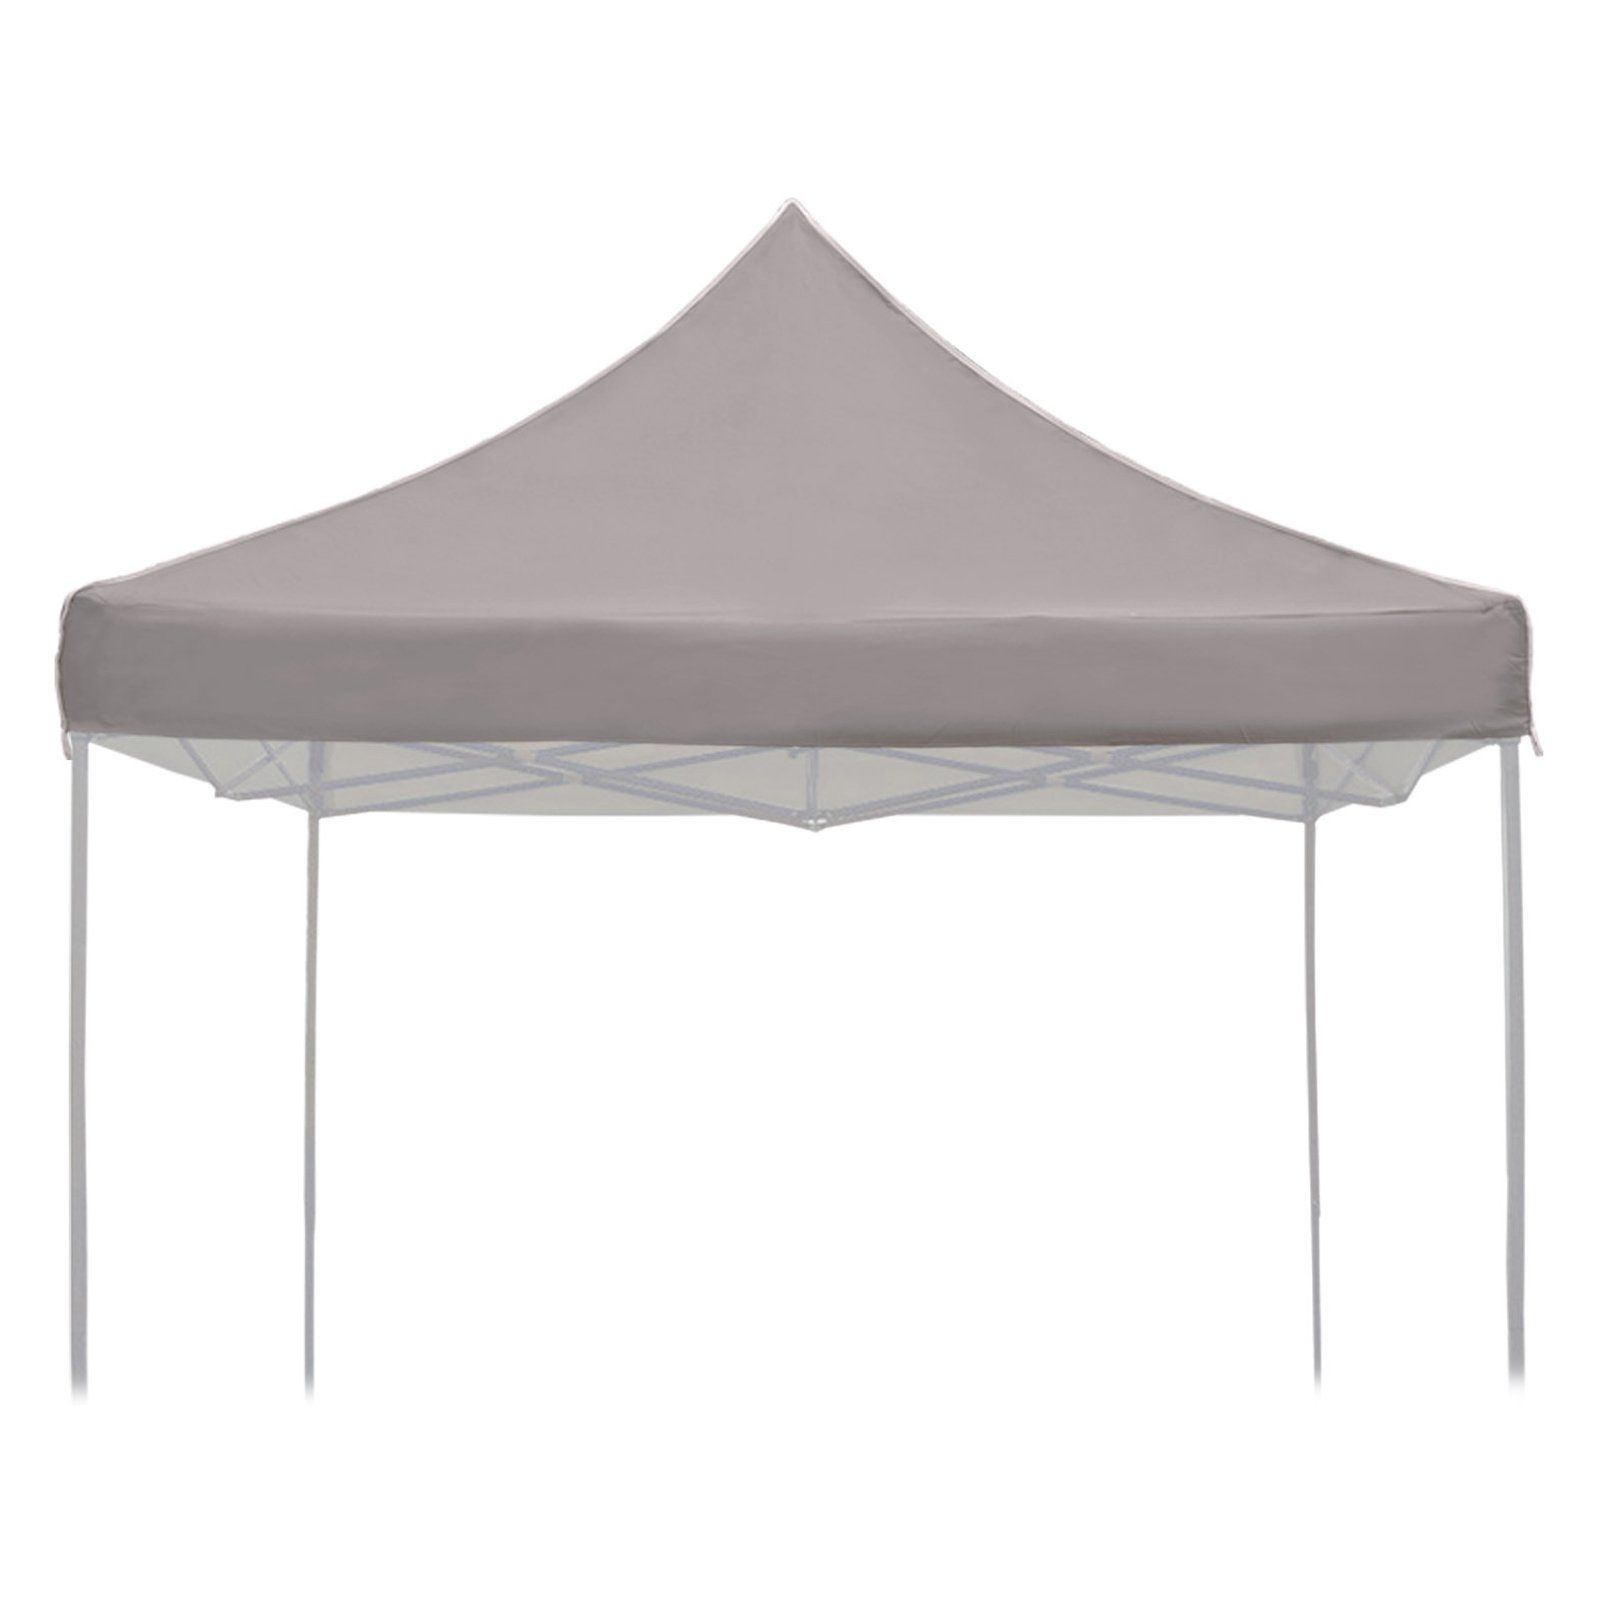 Sunrise Umbrella 10 X 10 Ft Ez Pop Up Replacement Canopy Top Taupe Replacement Canopy Canopy Shade Canopy